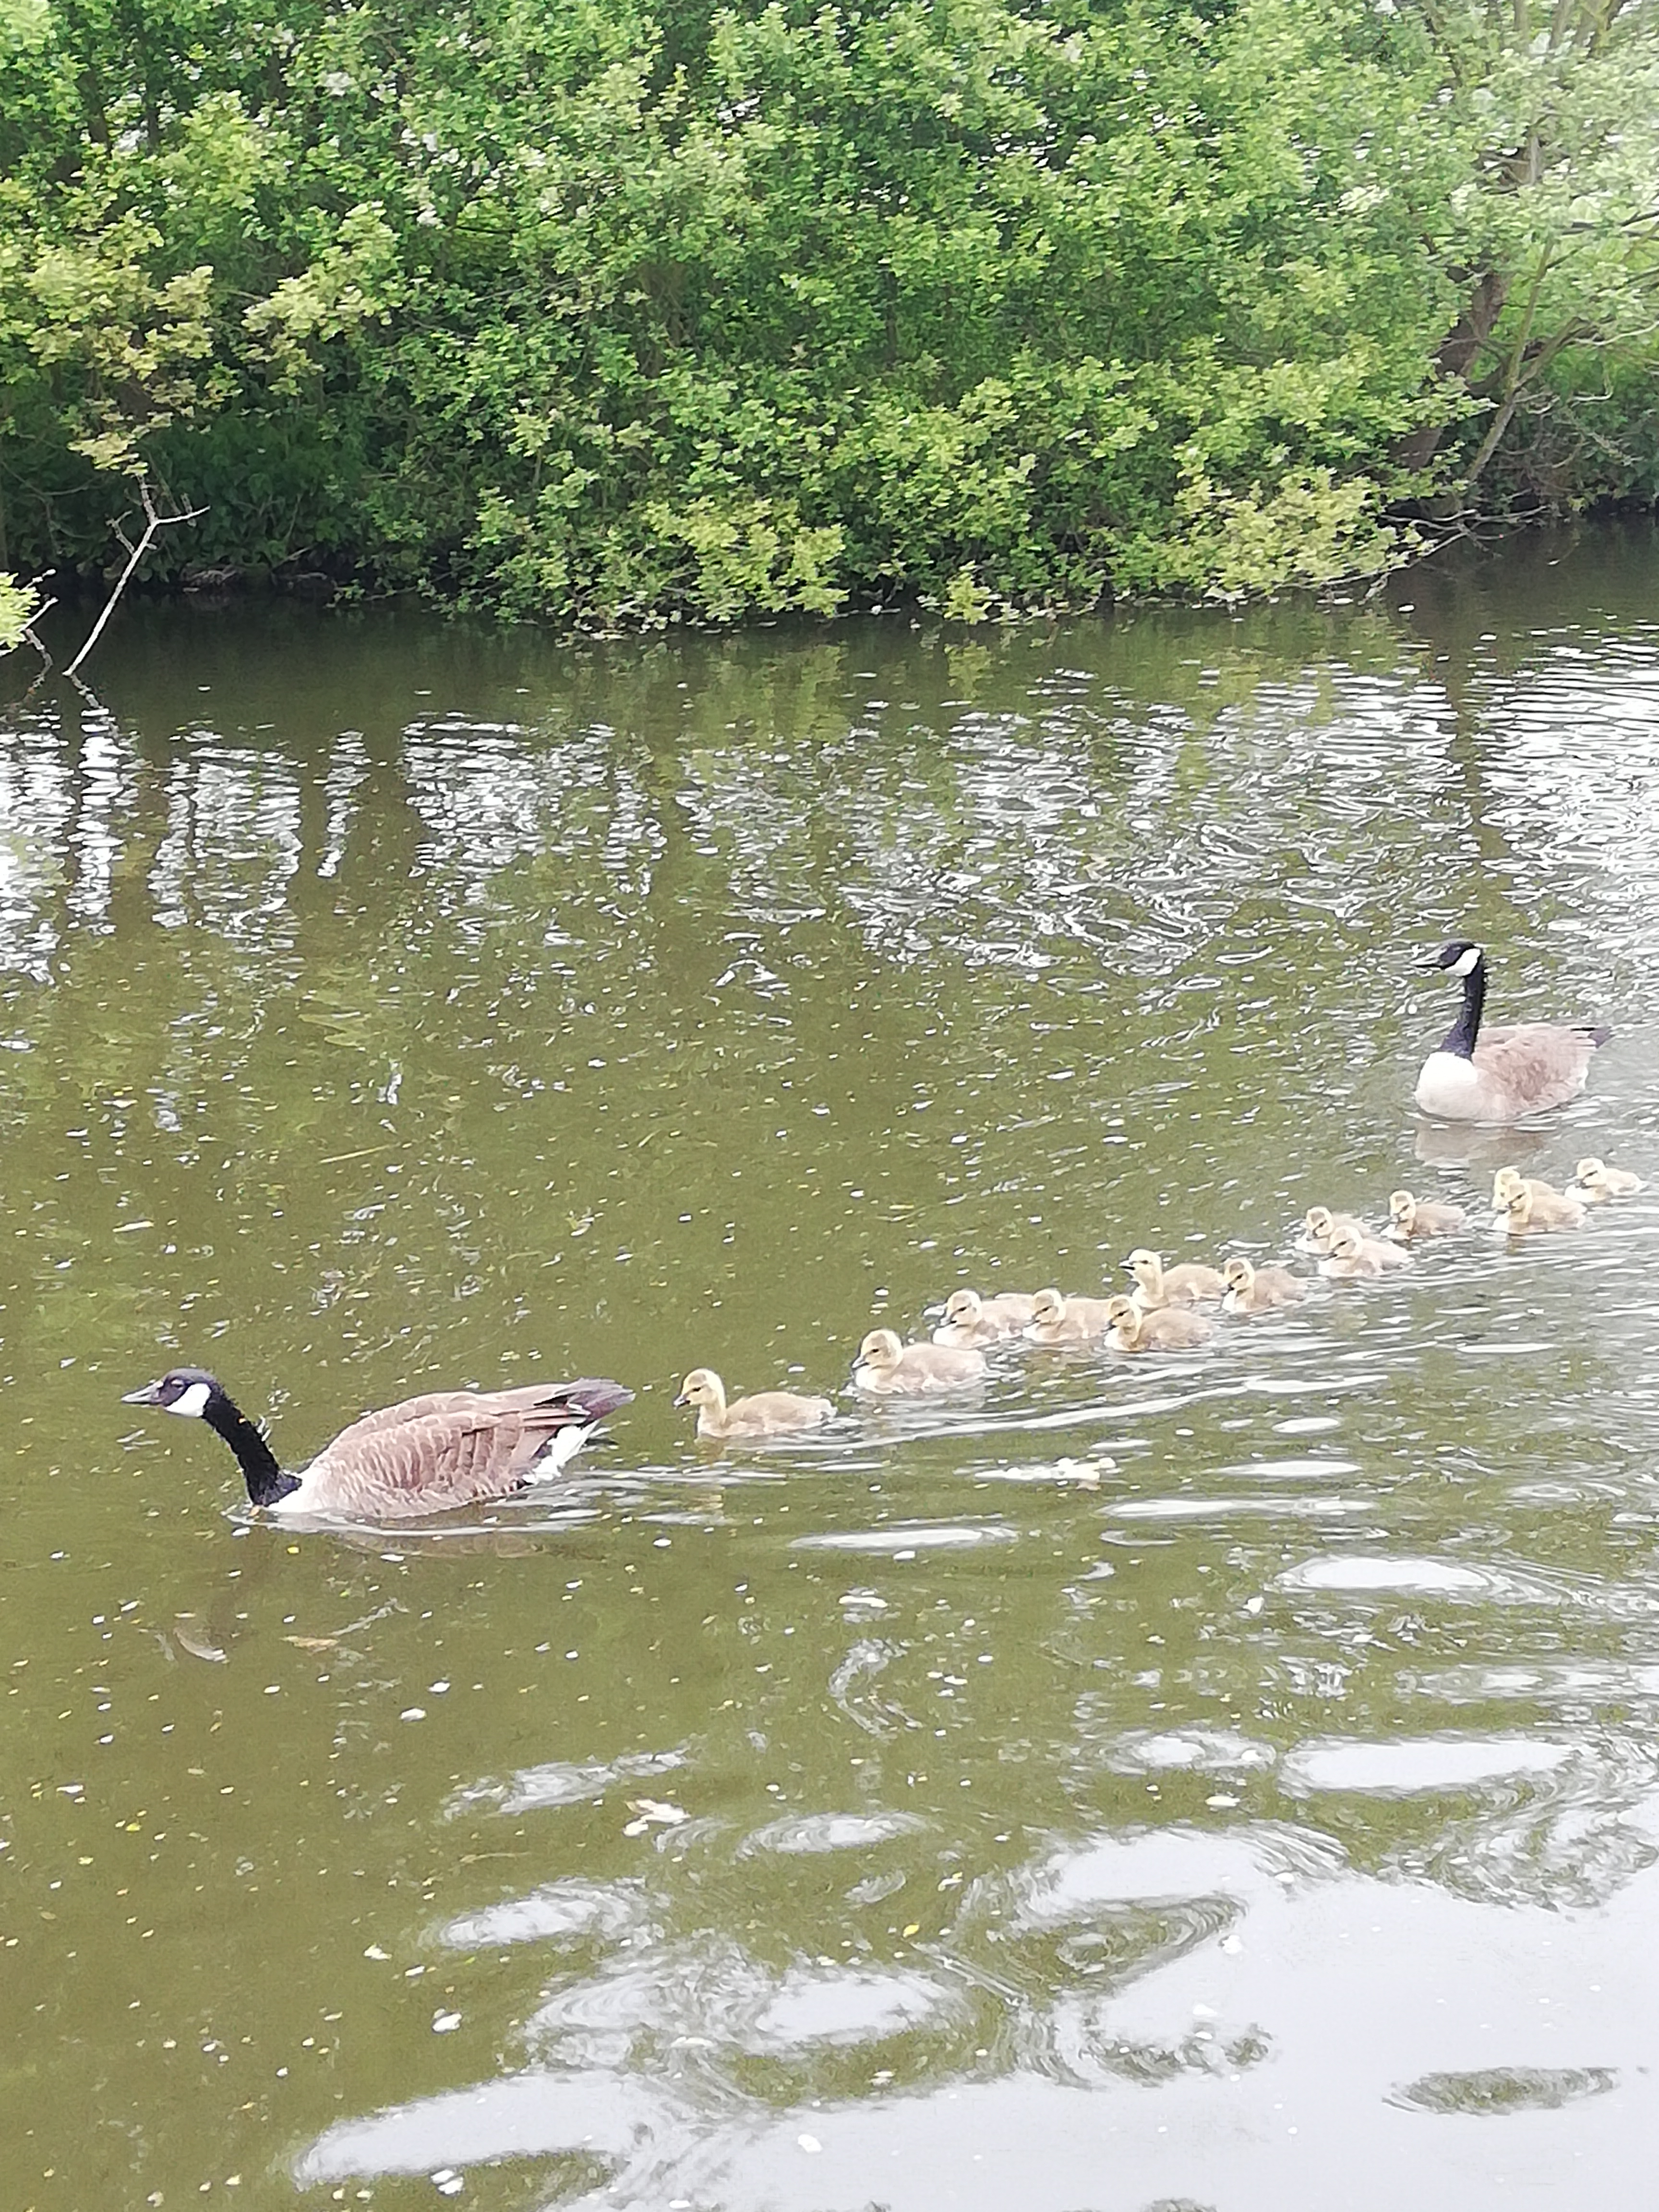 A pair of Geese swimming on the water with lots of goslings (Baby Geese) swimming in a line